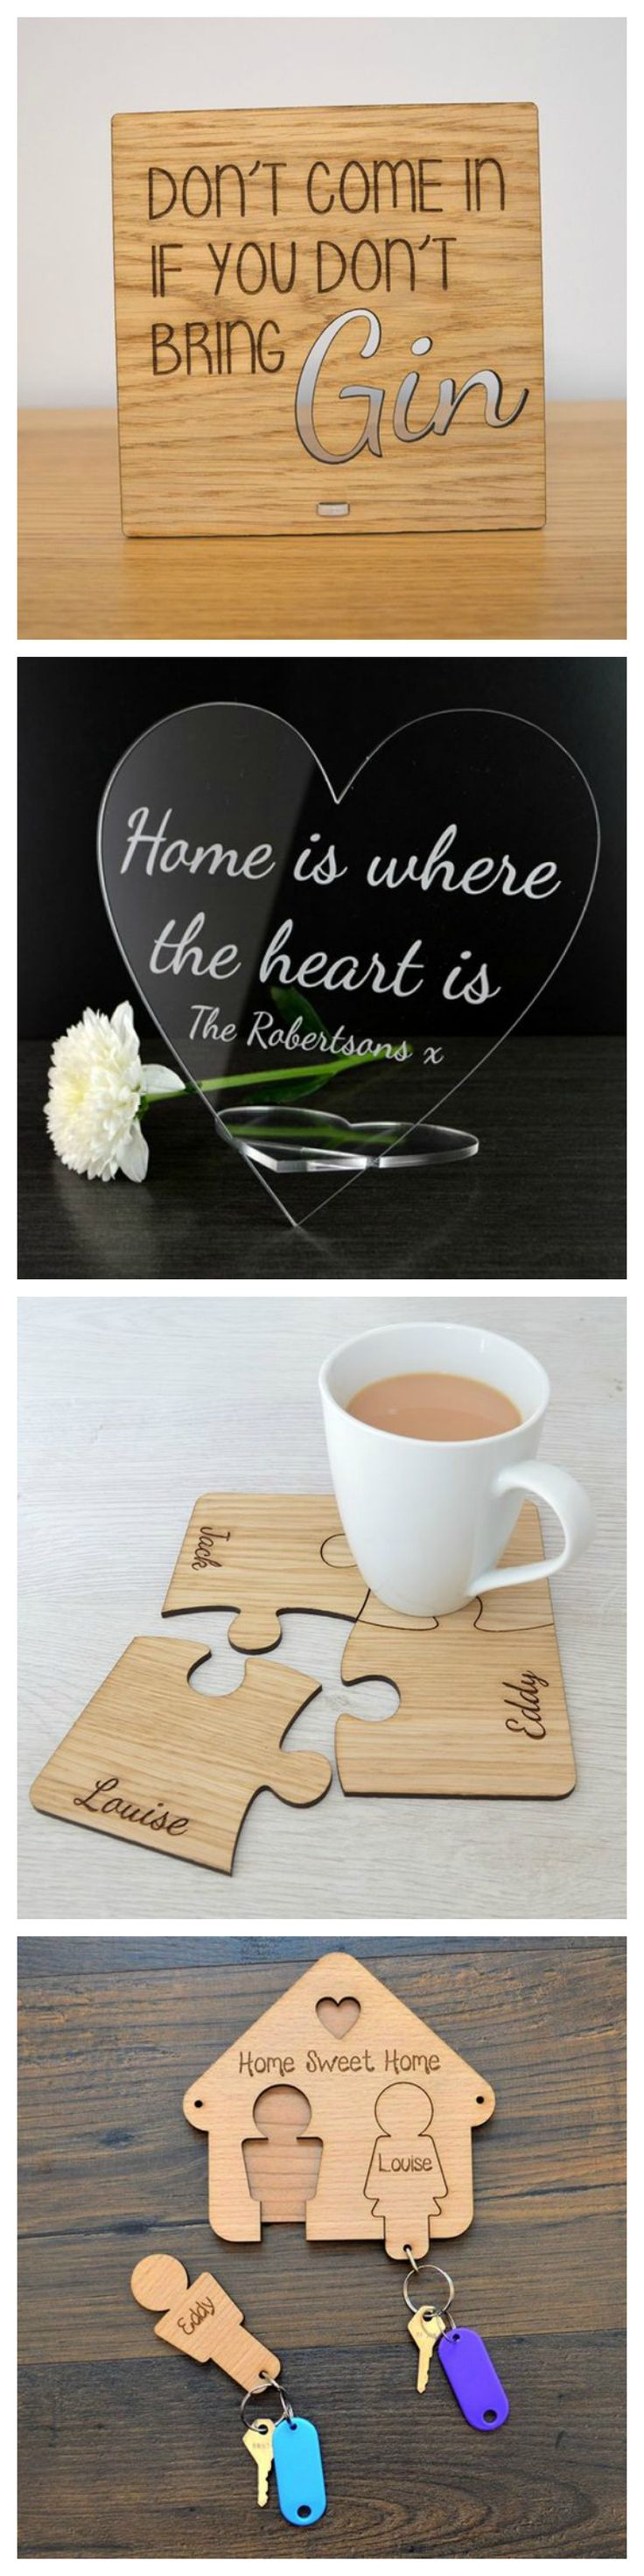 Great Housewarming Gift Ideas From PrettyPersonalised.com